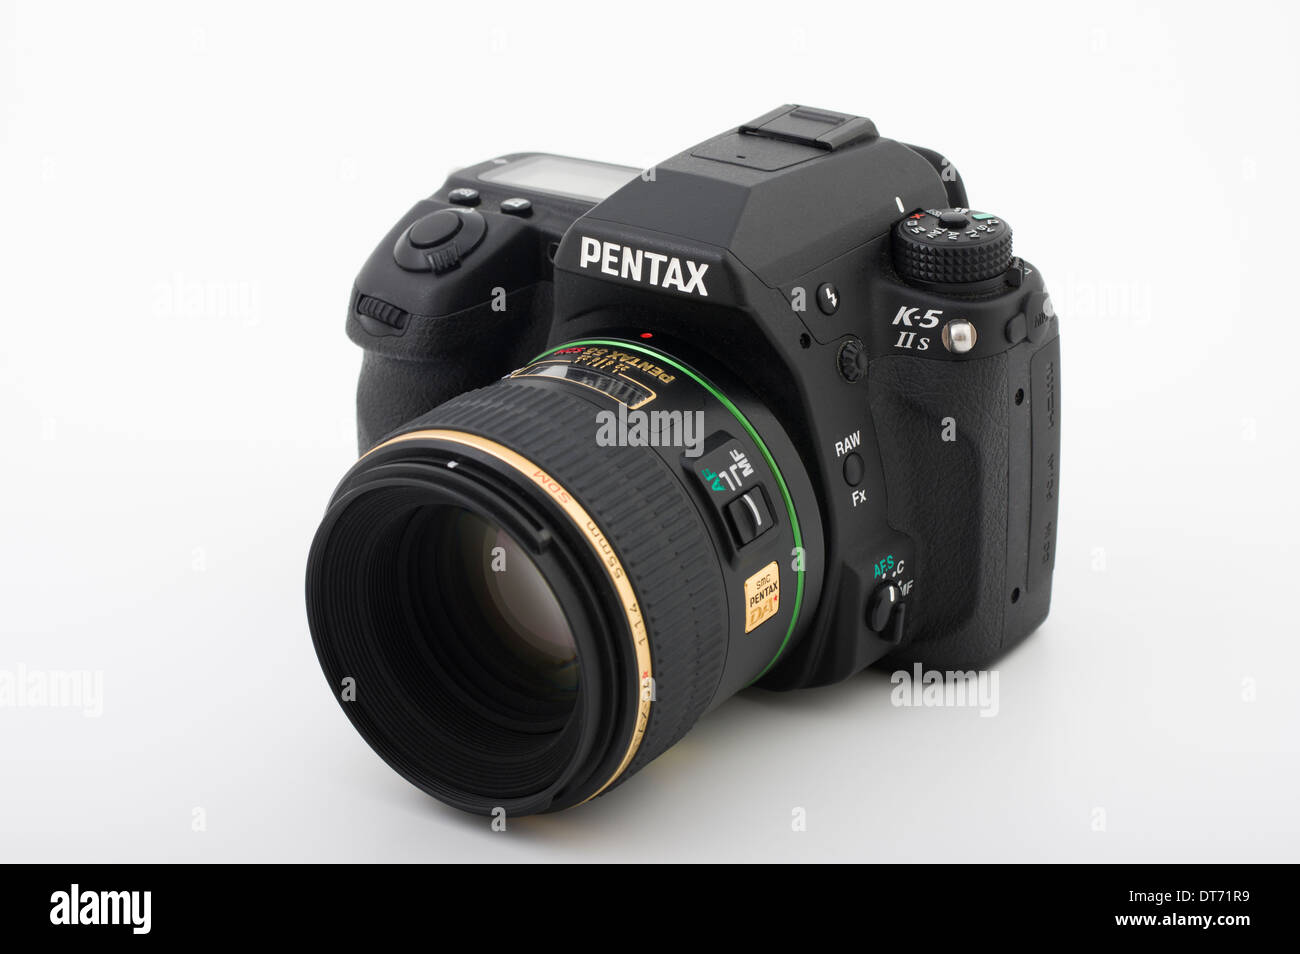 Pentax K-5 IIs digital SLR camera with 55mm 1.4 prime lens - Stock Image